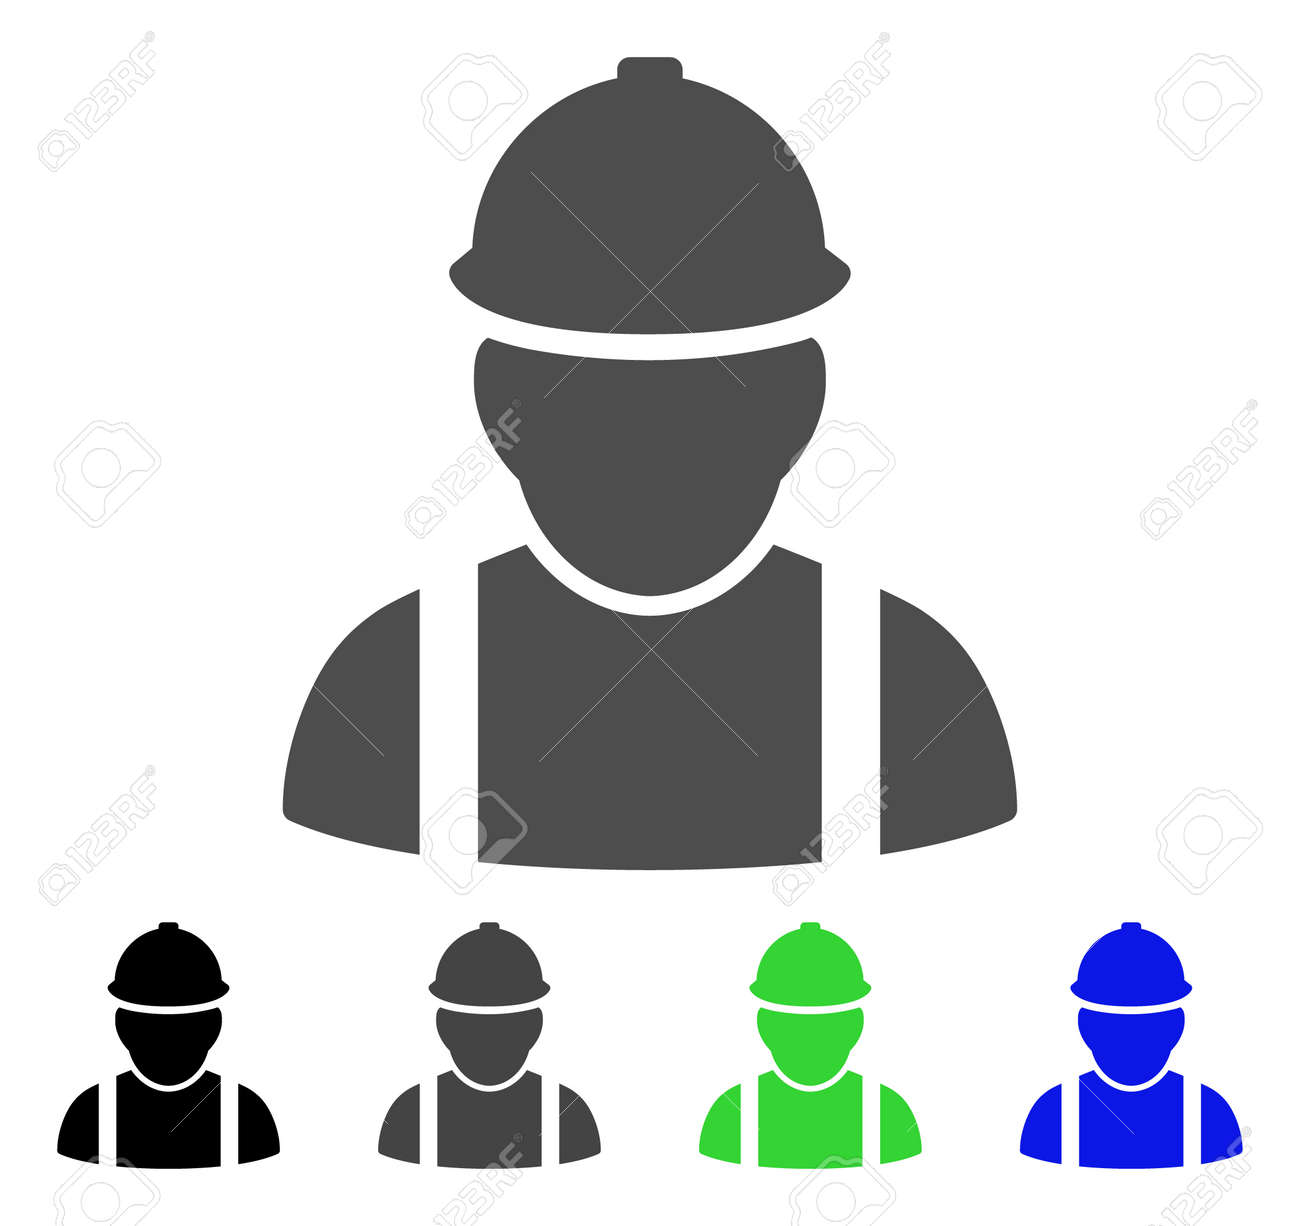 builder vector icon style is a flat graphic symbol in black